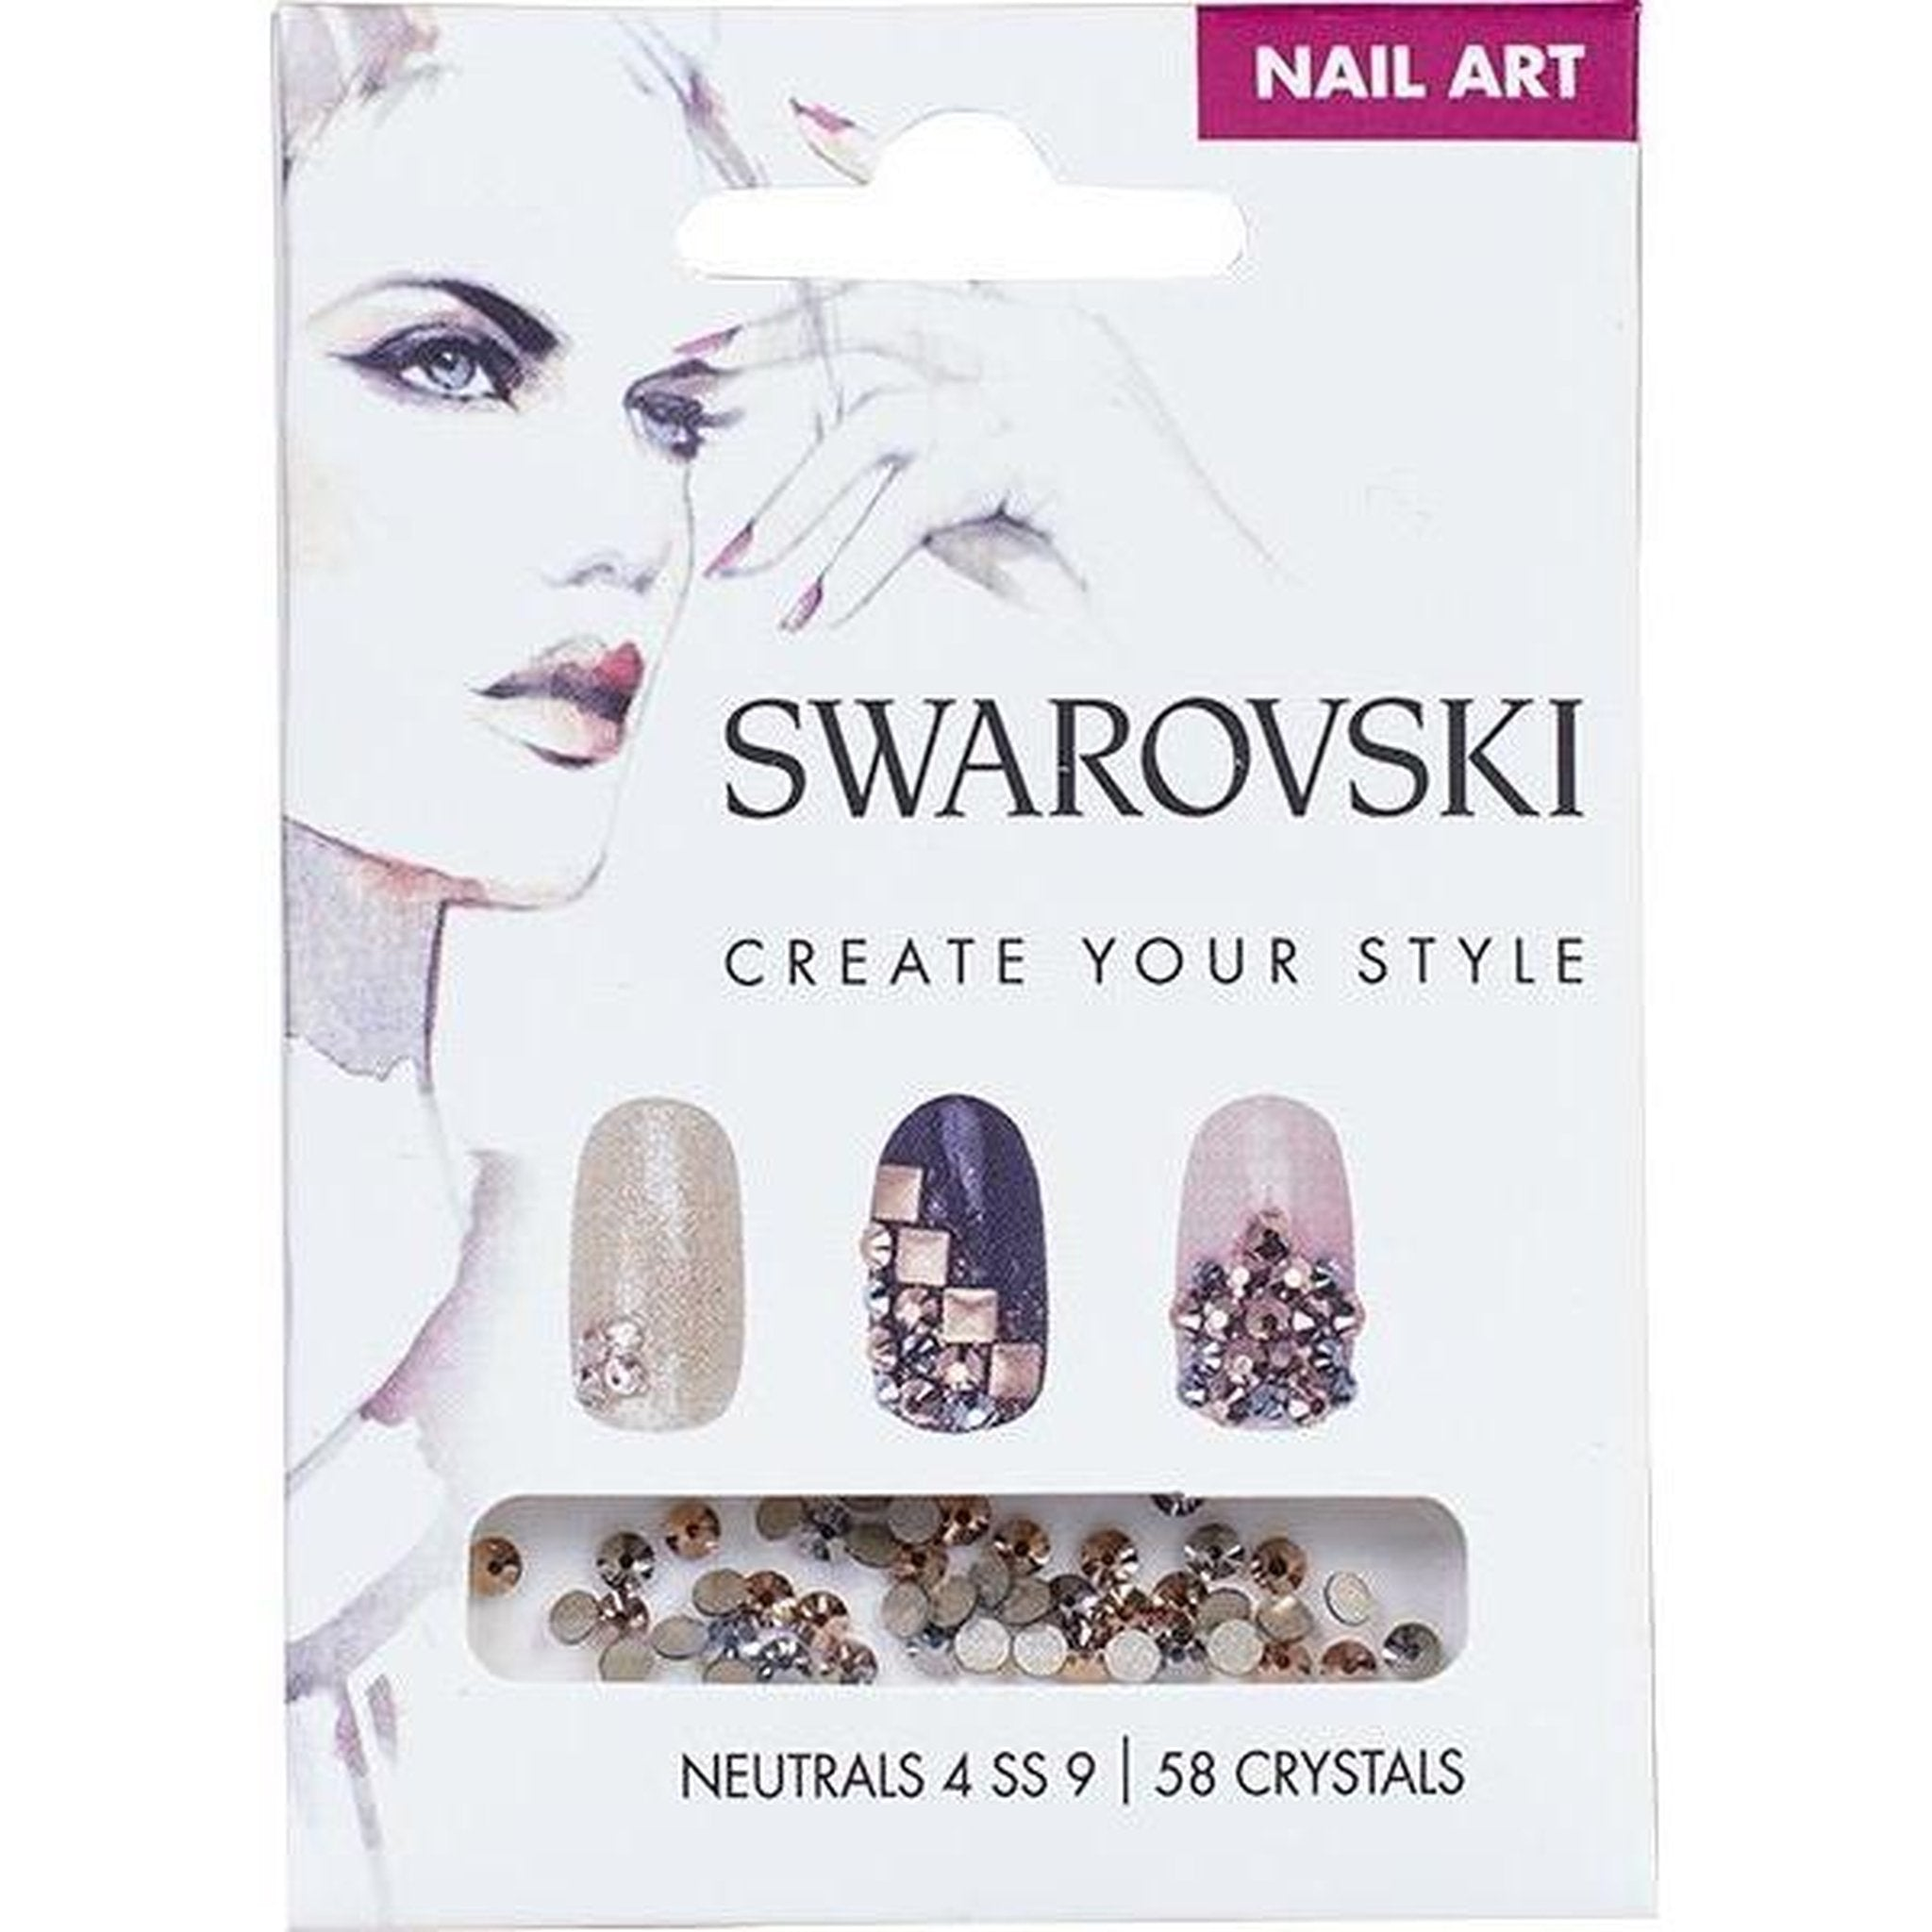 SWAROVSKI NAIL ART LOOSE CRYSTALS - NEUTRAL 4 SS9-Gel Essentialz